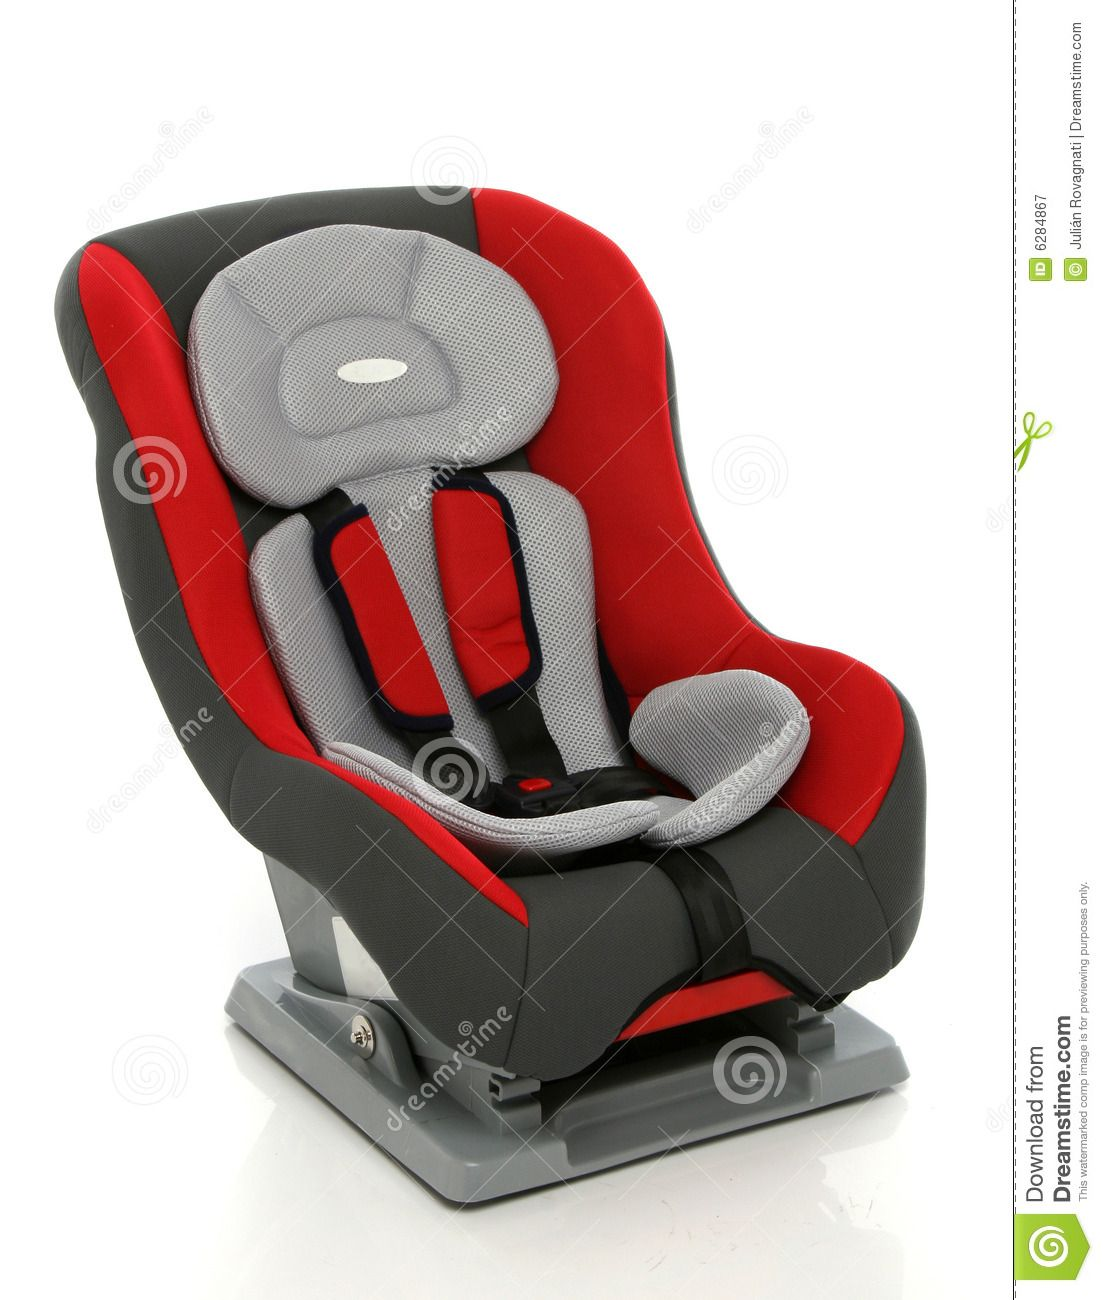 baby+car+seat_181 | Car Seats | Pinterest | Baby cars, Car seats and